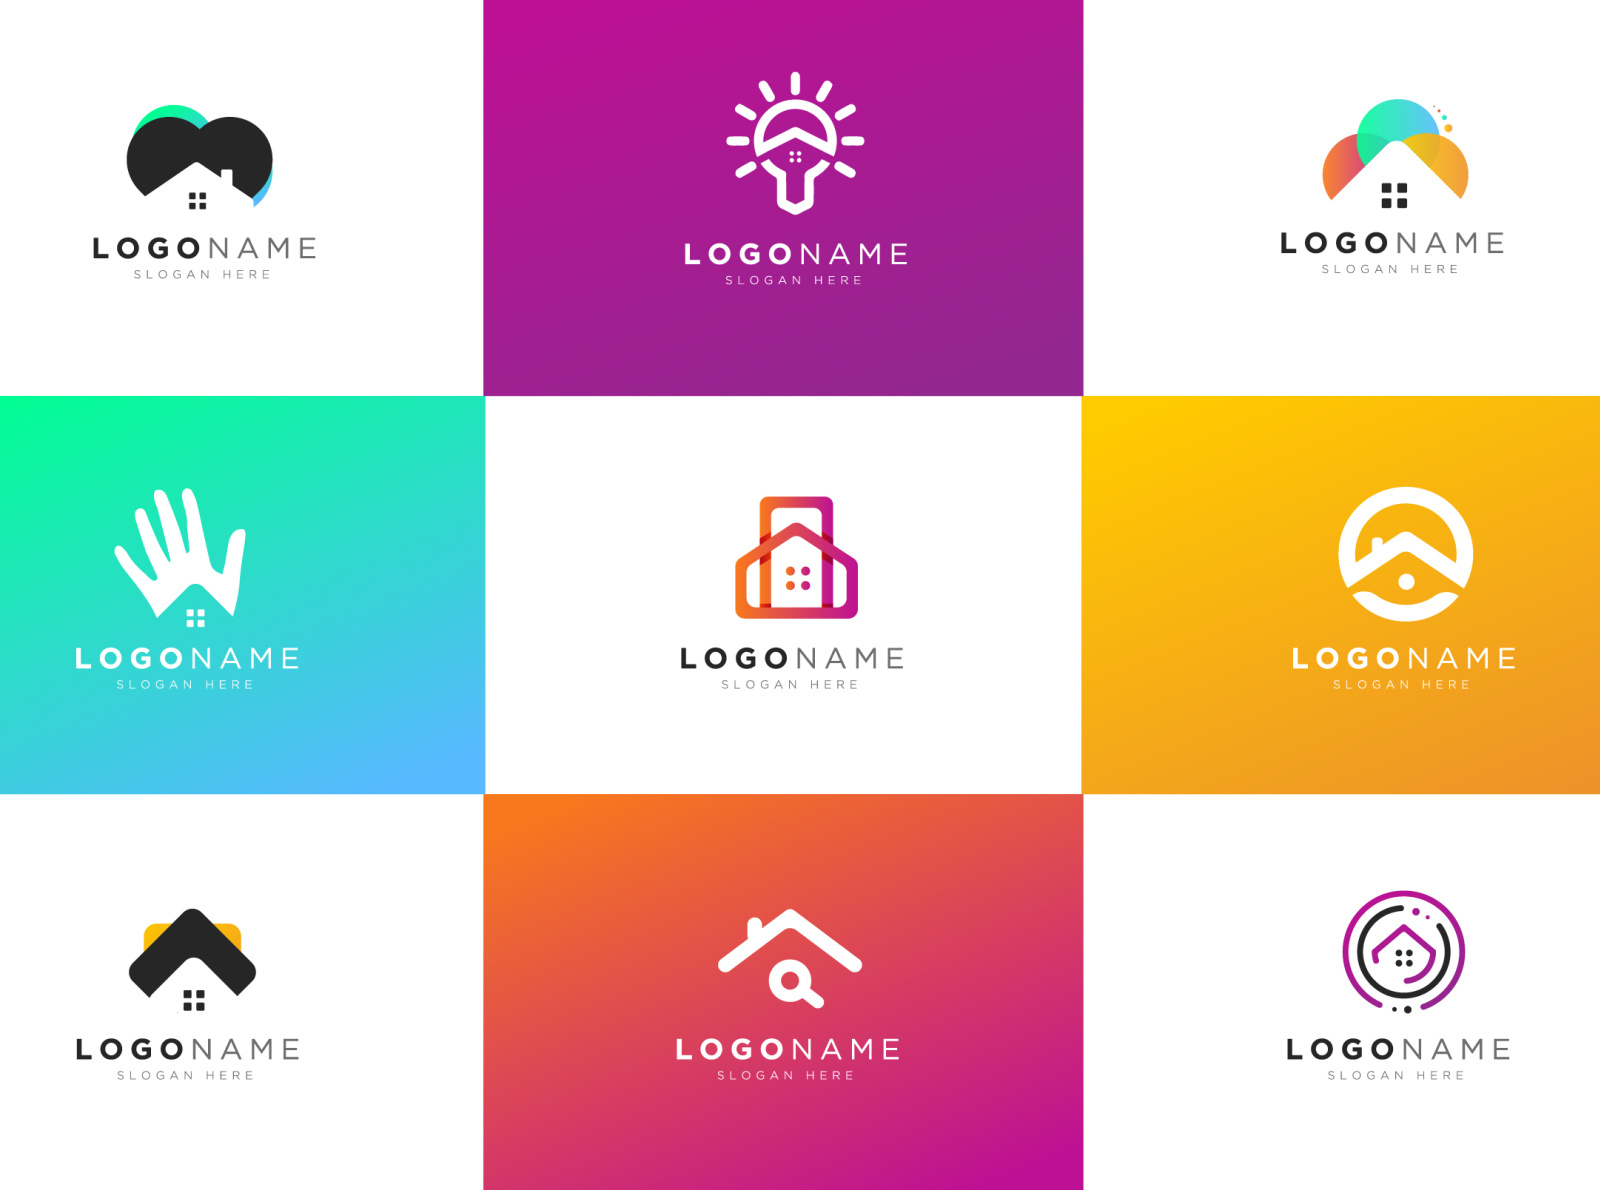 Rejected Real Estate Logos by John Alee on Dribbble.